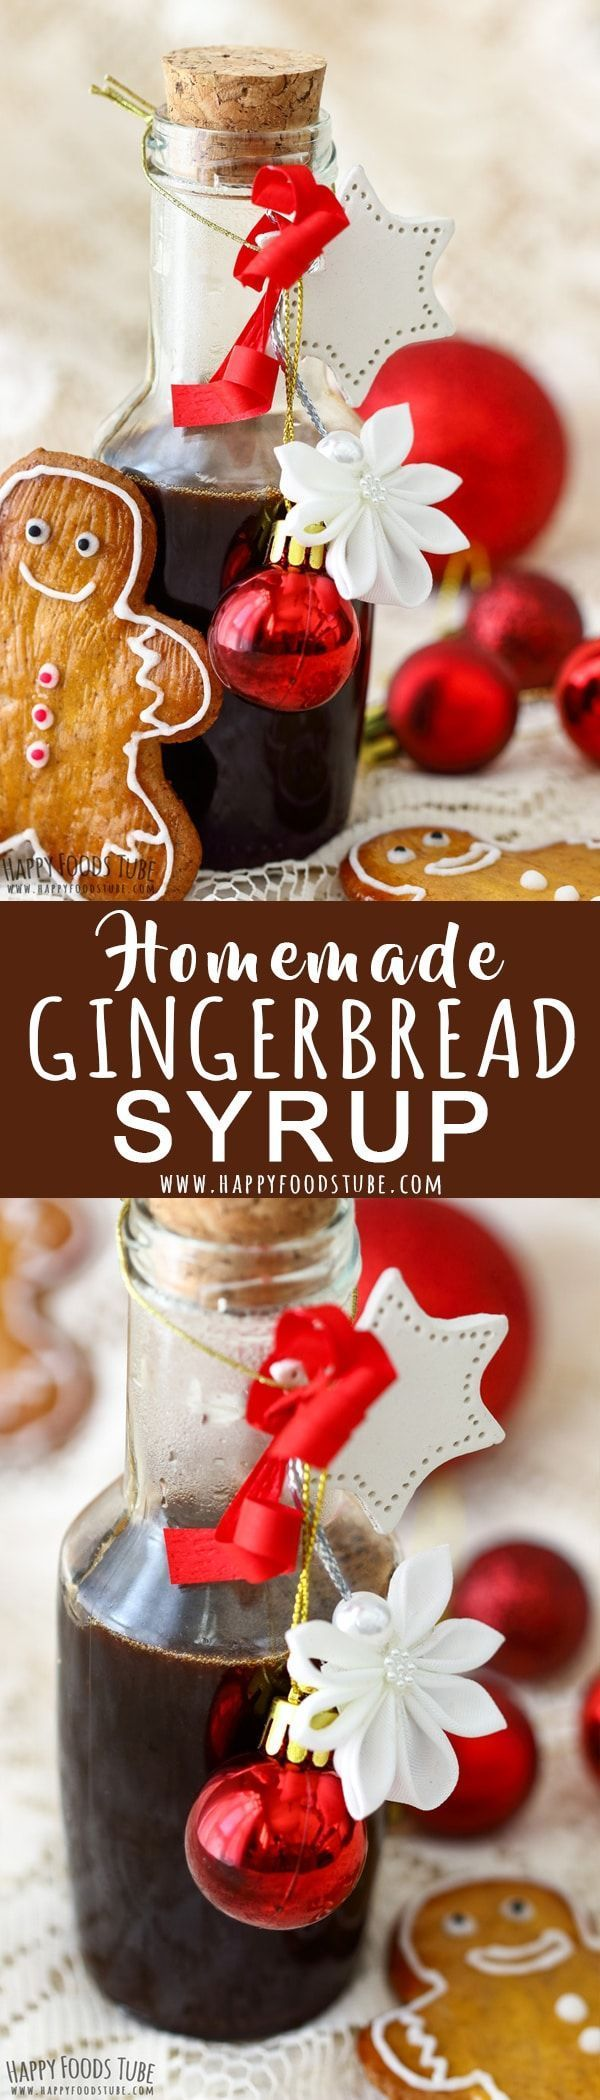 Love gingerbread flavor? Then you will fall in love with this homemade gingerbread syrup. It is all you need to flavor your pancakes, coffee, tea or crepes. Step by step how to make gingerbread syrup at home. #gingerbread #syrup #recipe #holidays #christmas #howtomake #homemade #coffee #pancakes via @happyfoodstube